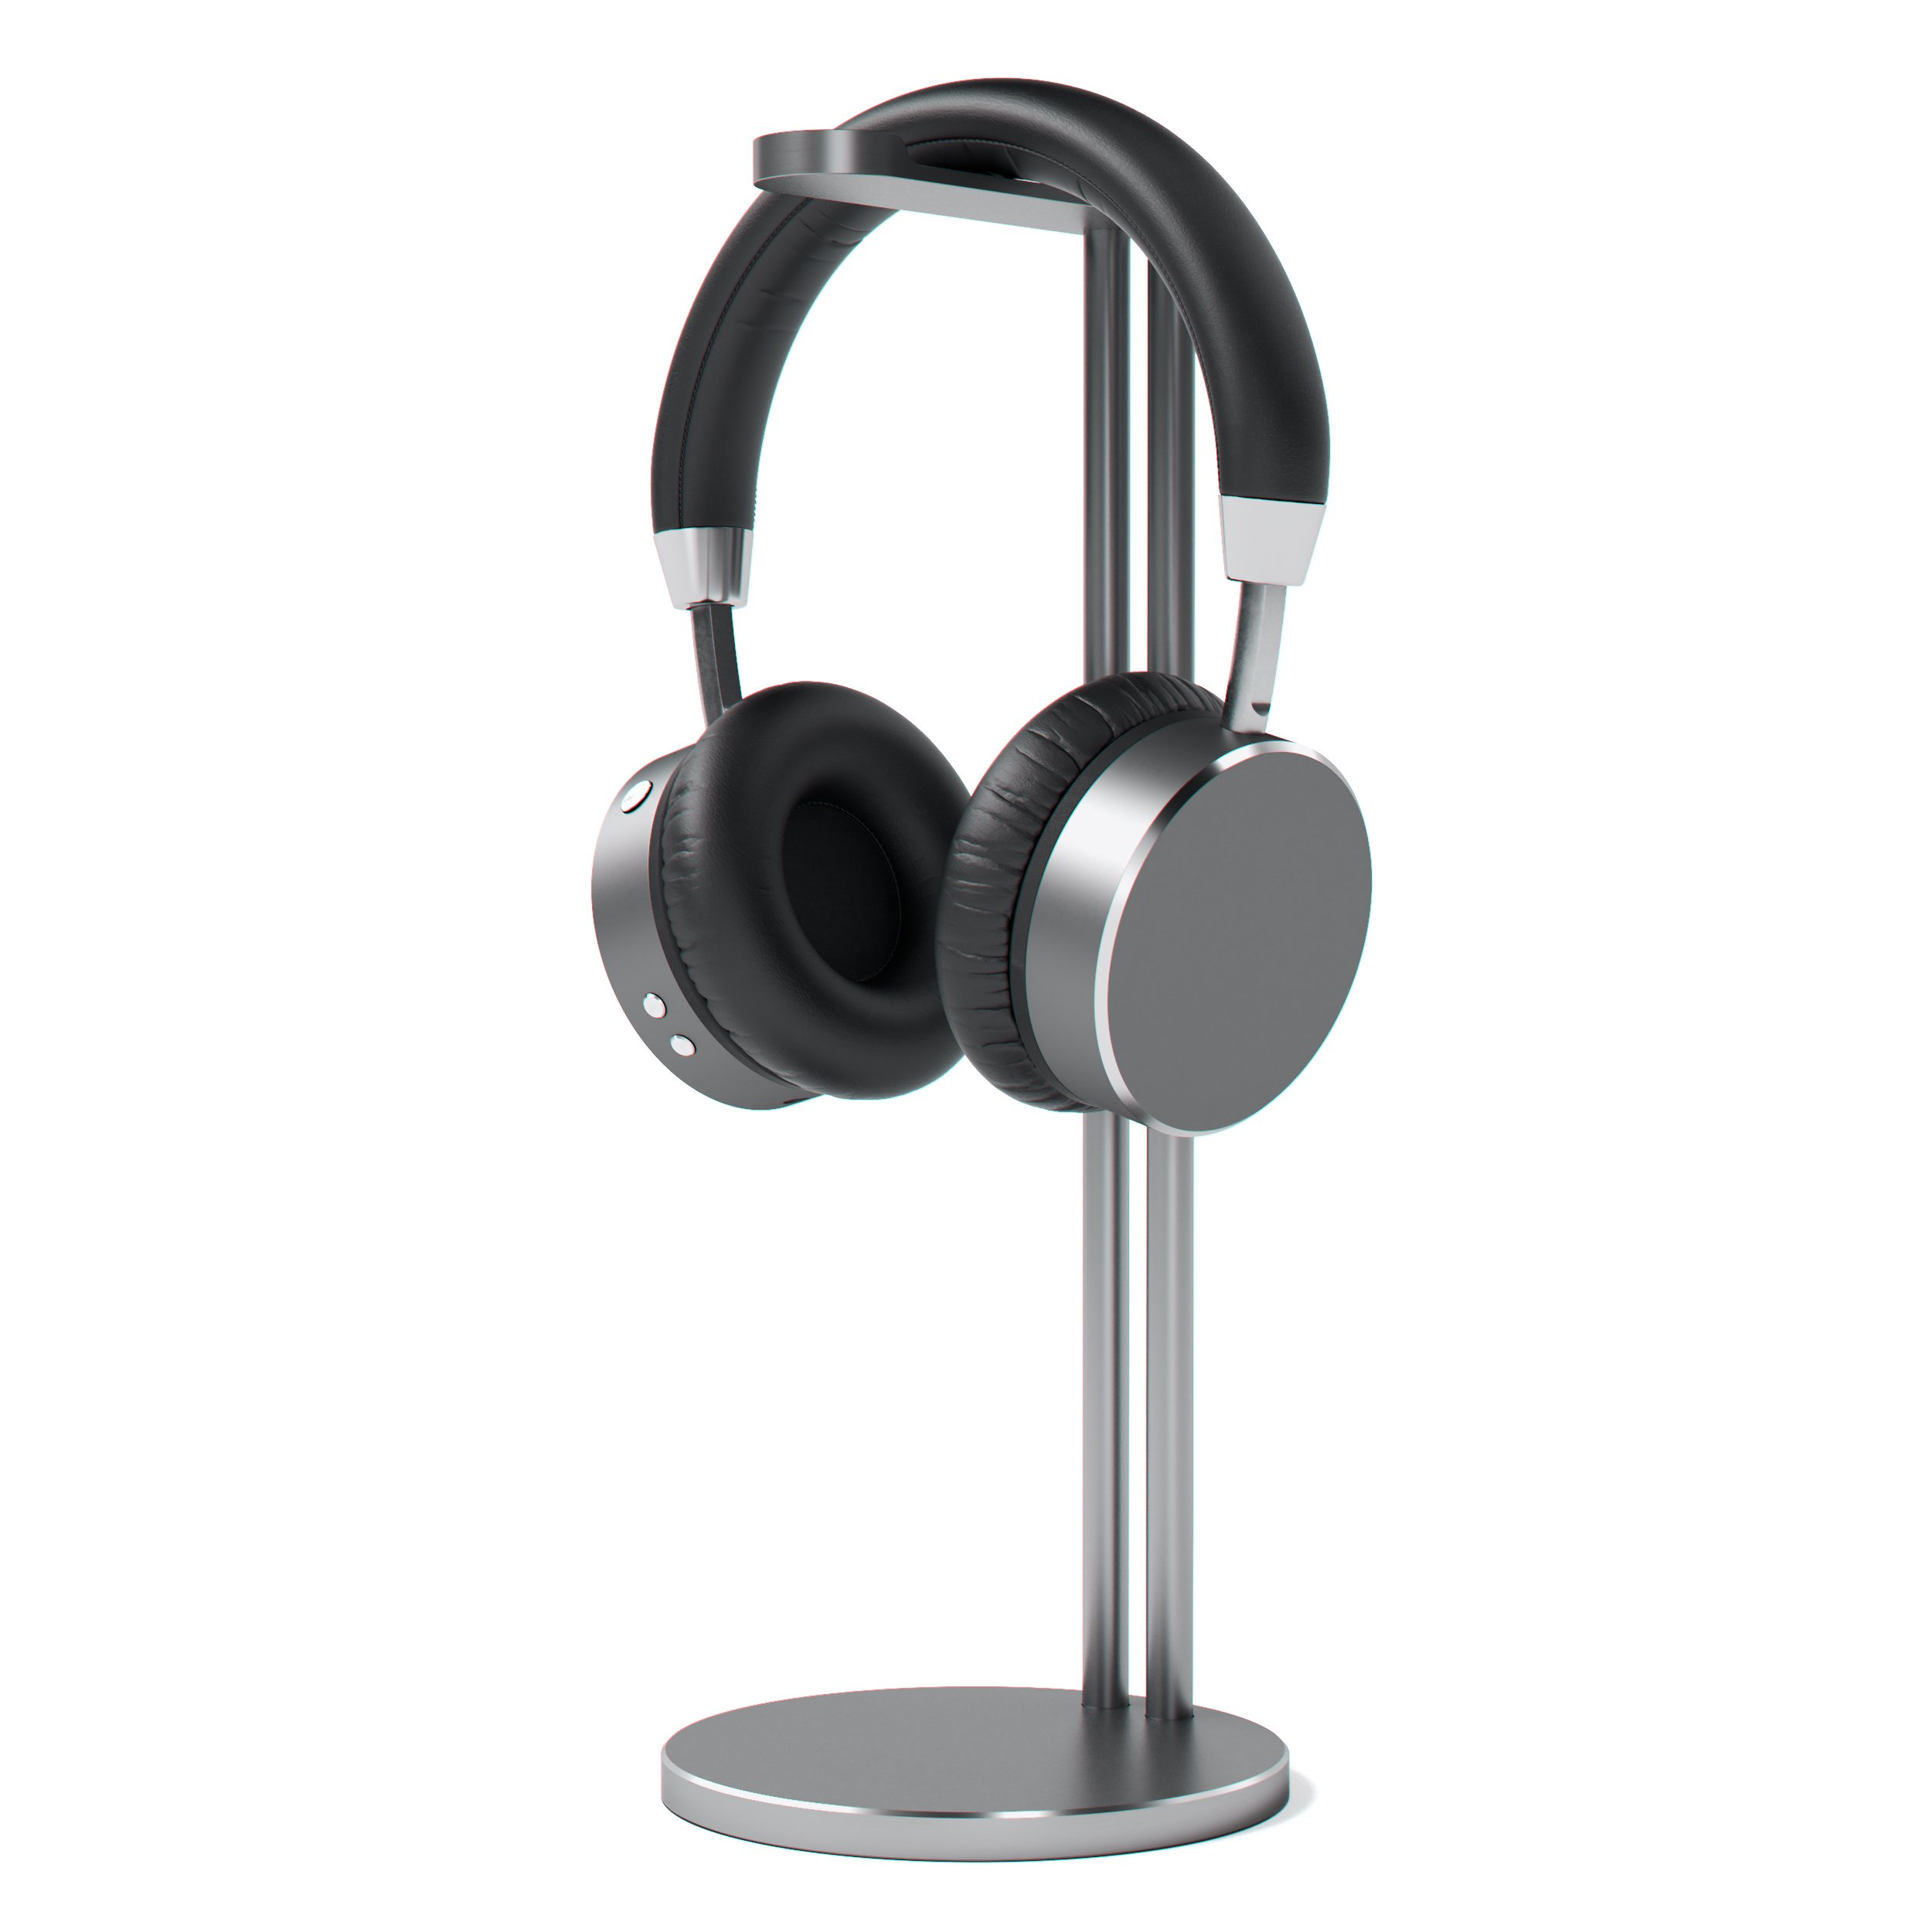 Satechi Aluminum Slim Headphone Headset Stand - Universal Fit - Compatible with Bose, Sony, Beats, JBL, Panasonic, AKG, Audio-Technica, Sennheiser, Shure and More (Space Gray)